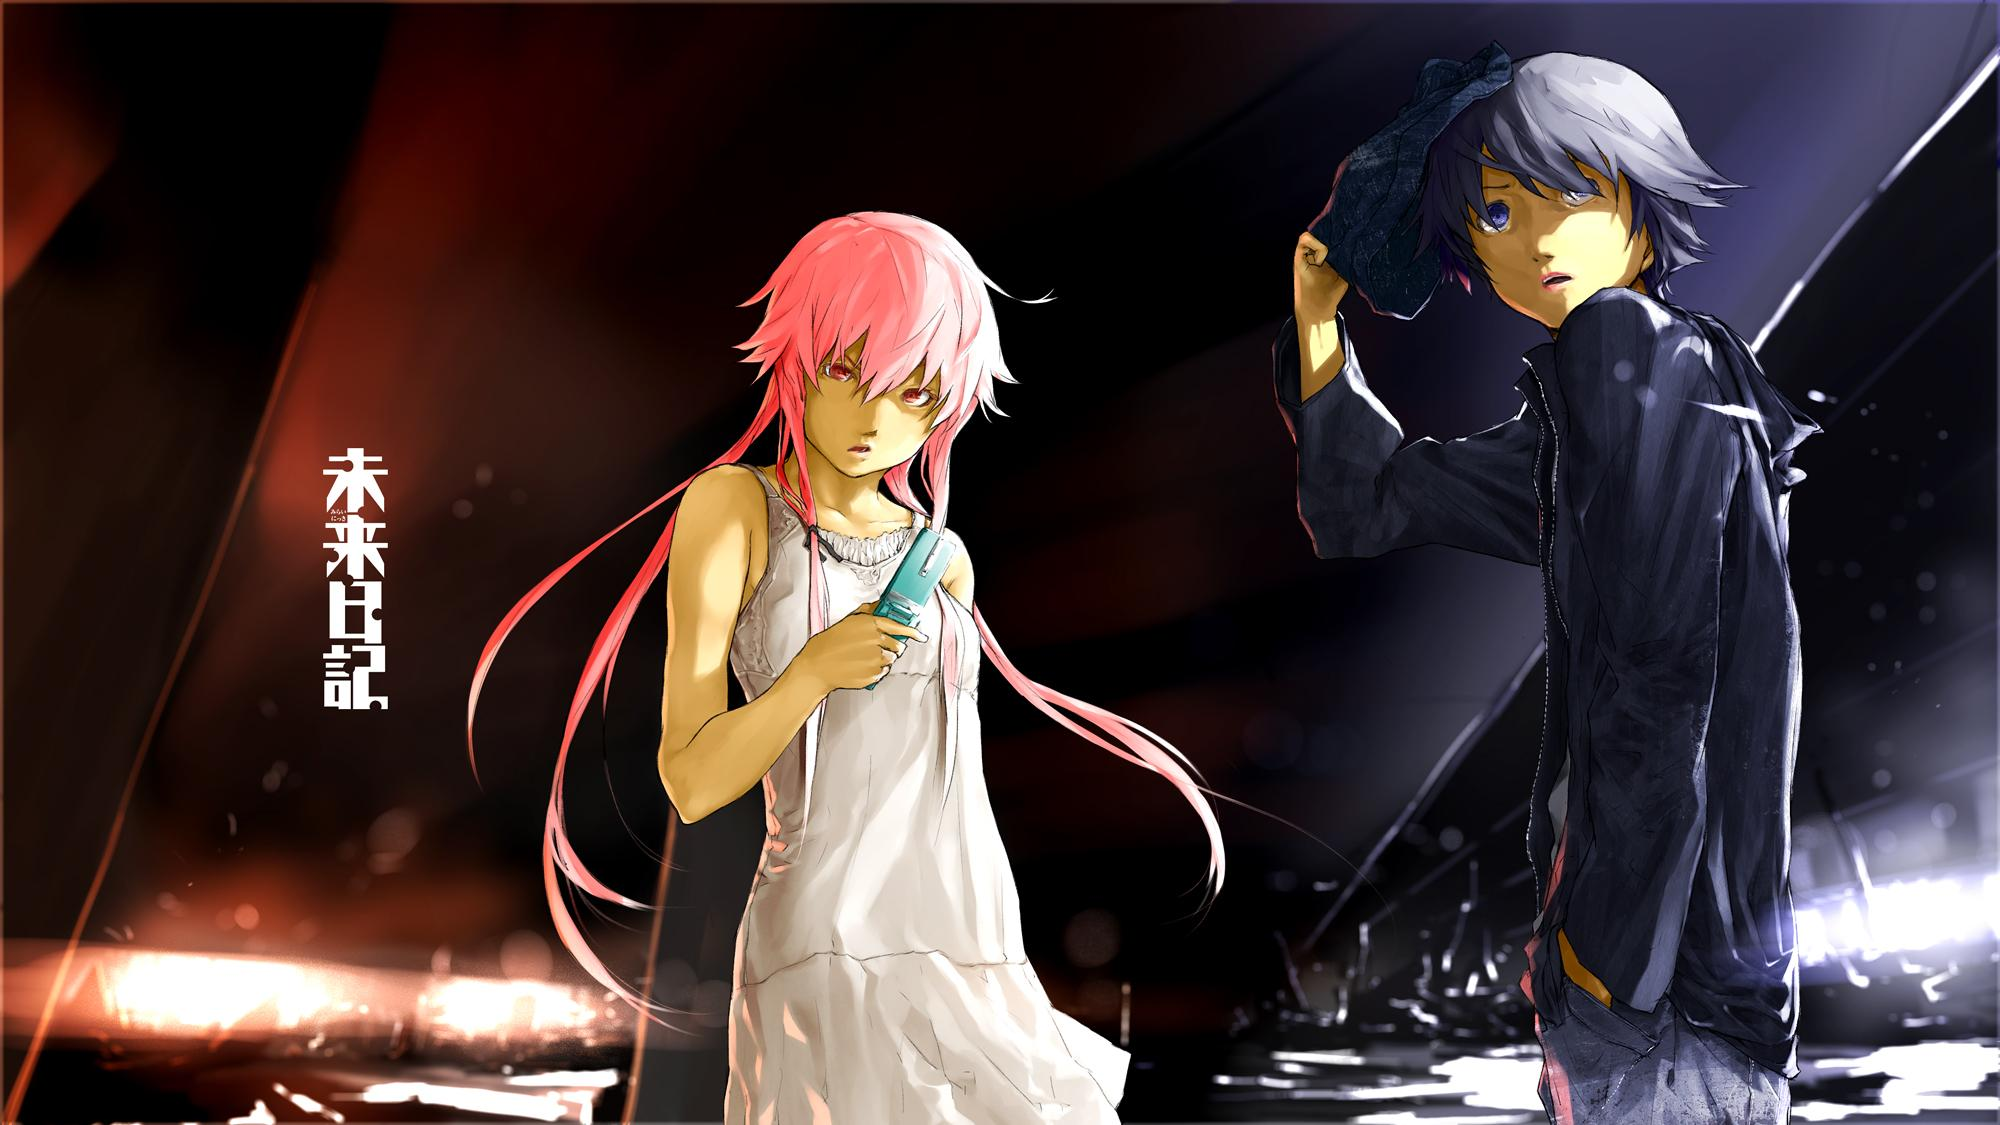 Gasai Yuno Yukiteru Amano Mirai Nikki Wallpapers Hd: Mirai Nikki Wallpaper HD Download